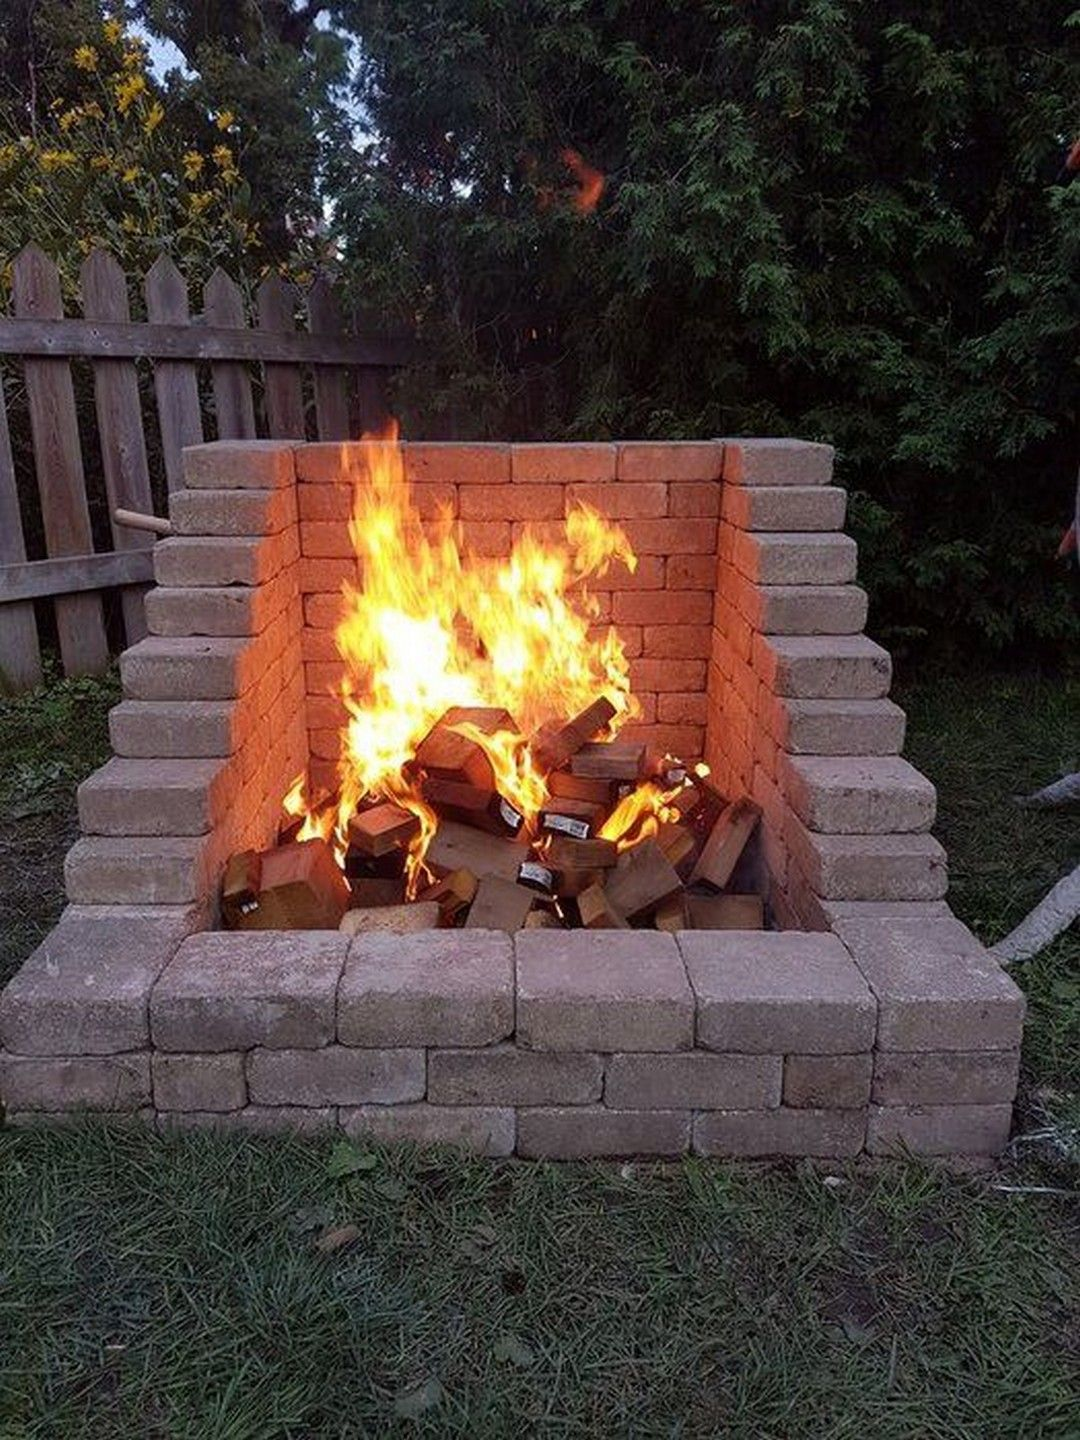 Want a Great Accent To Your Backyard, But Tight On Space? Try This DIY Fire Place/Pit Build T... #diyfirepit